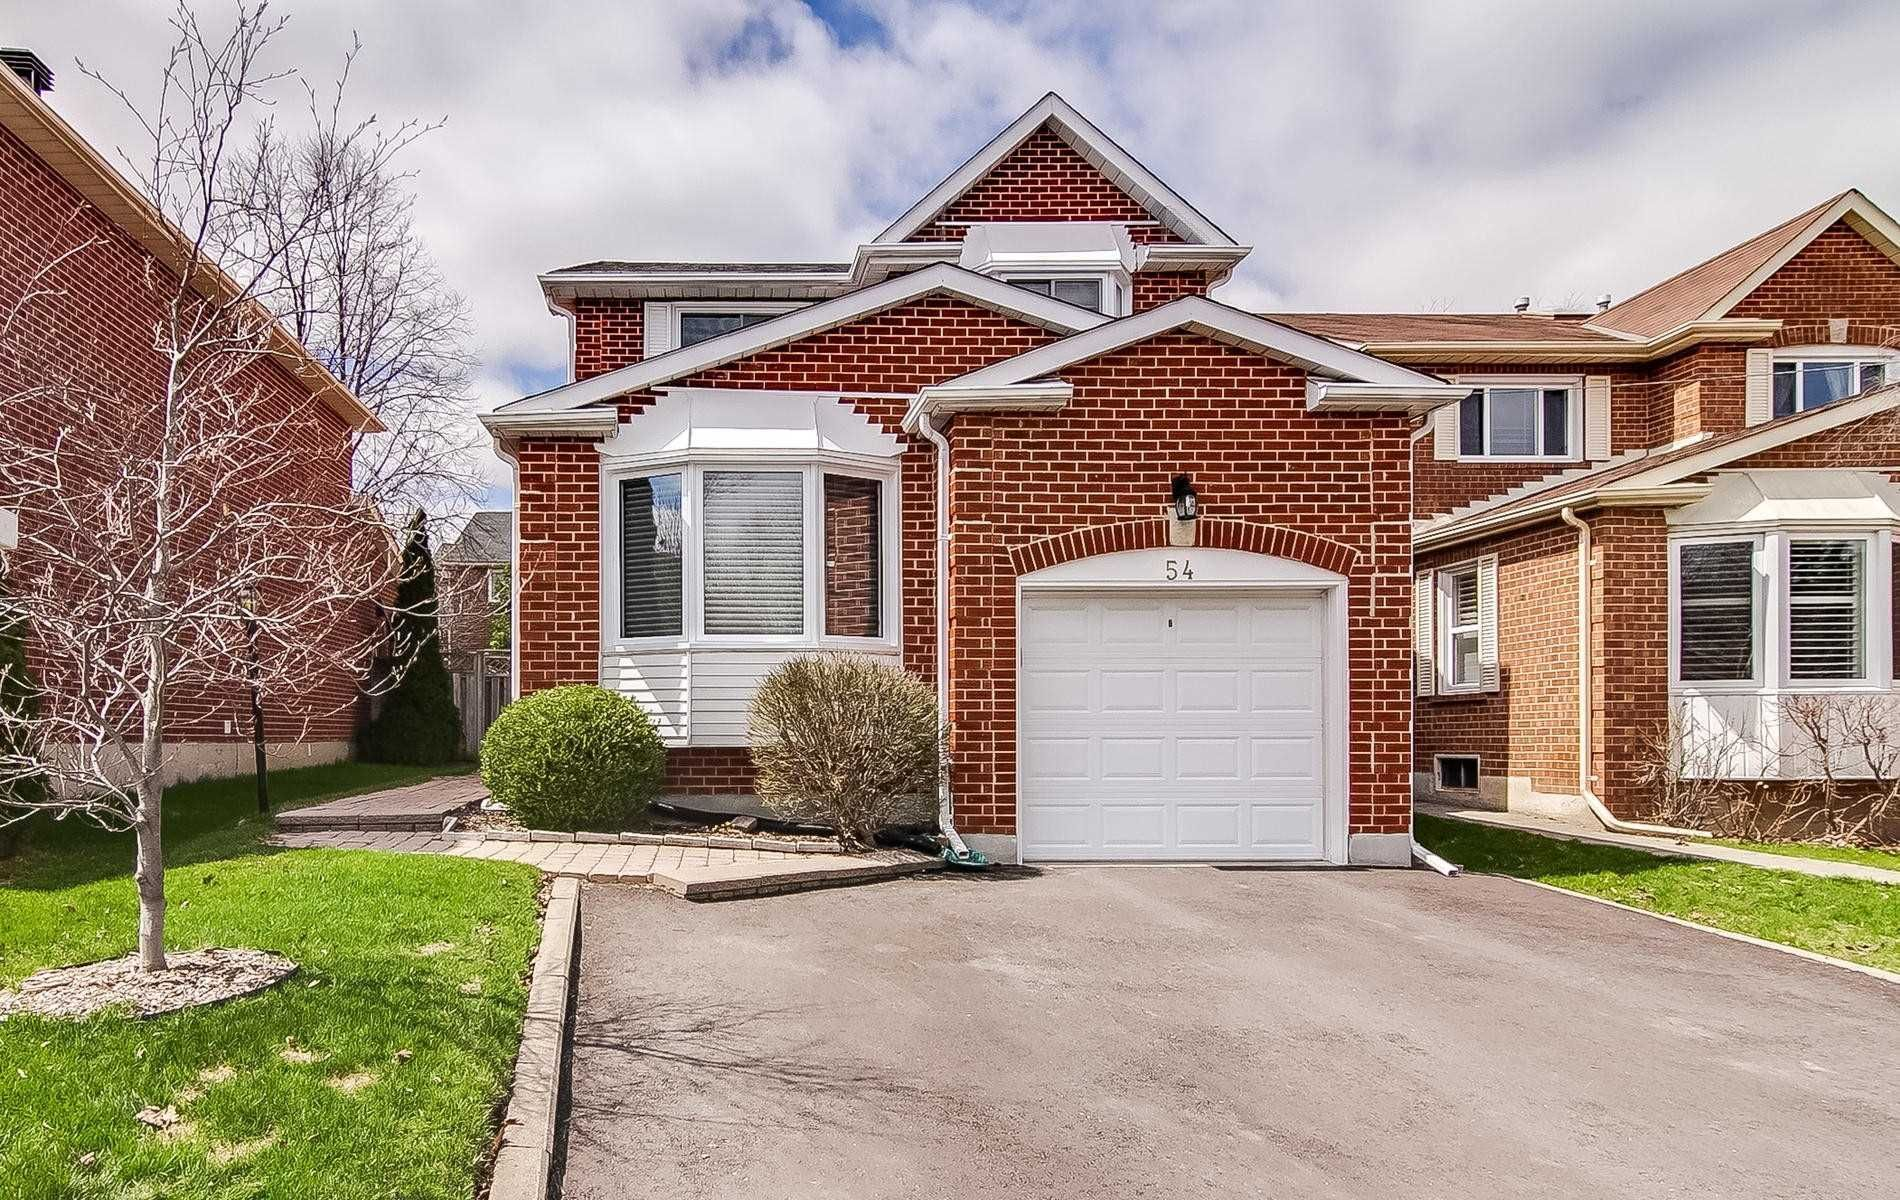 Main Photo: 54 Springfield Way in Vaughan: Crestwood-Springfarm-Yorkhill House (2-Storey) for sale : MLS®# N4432228